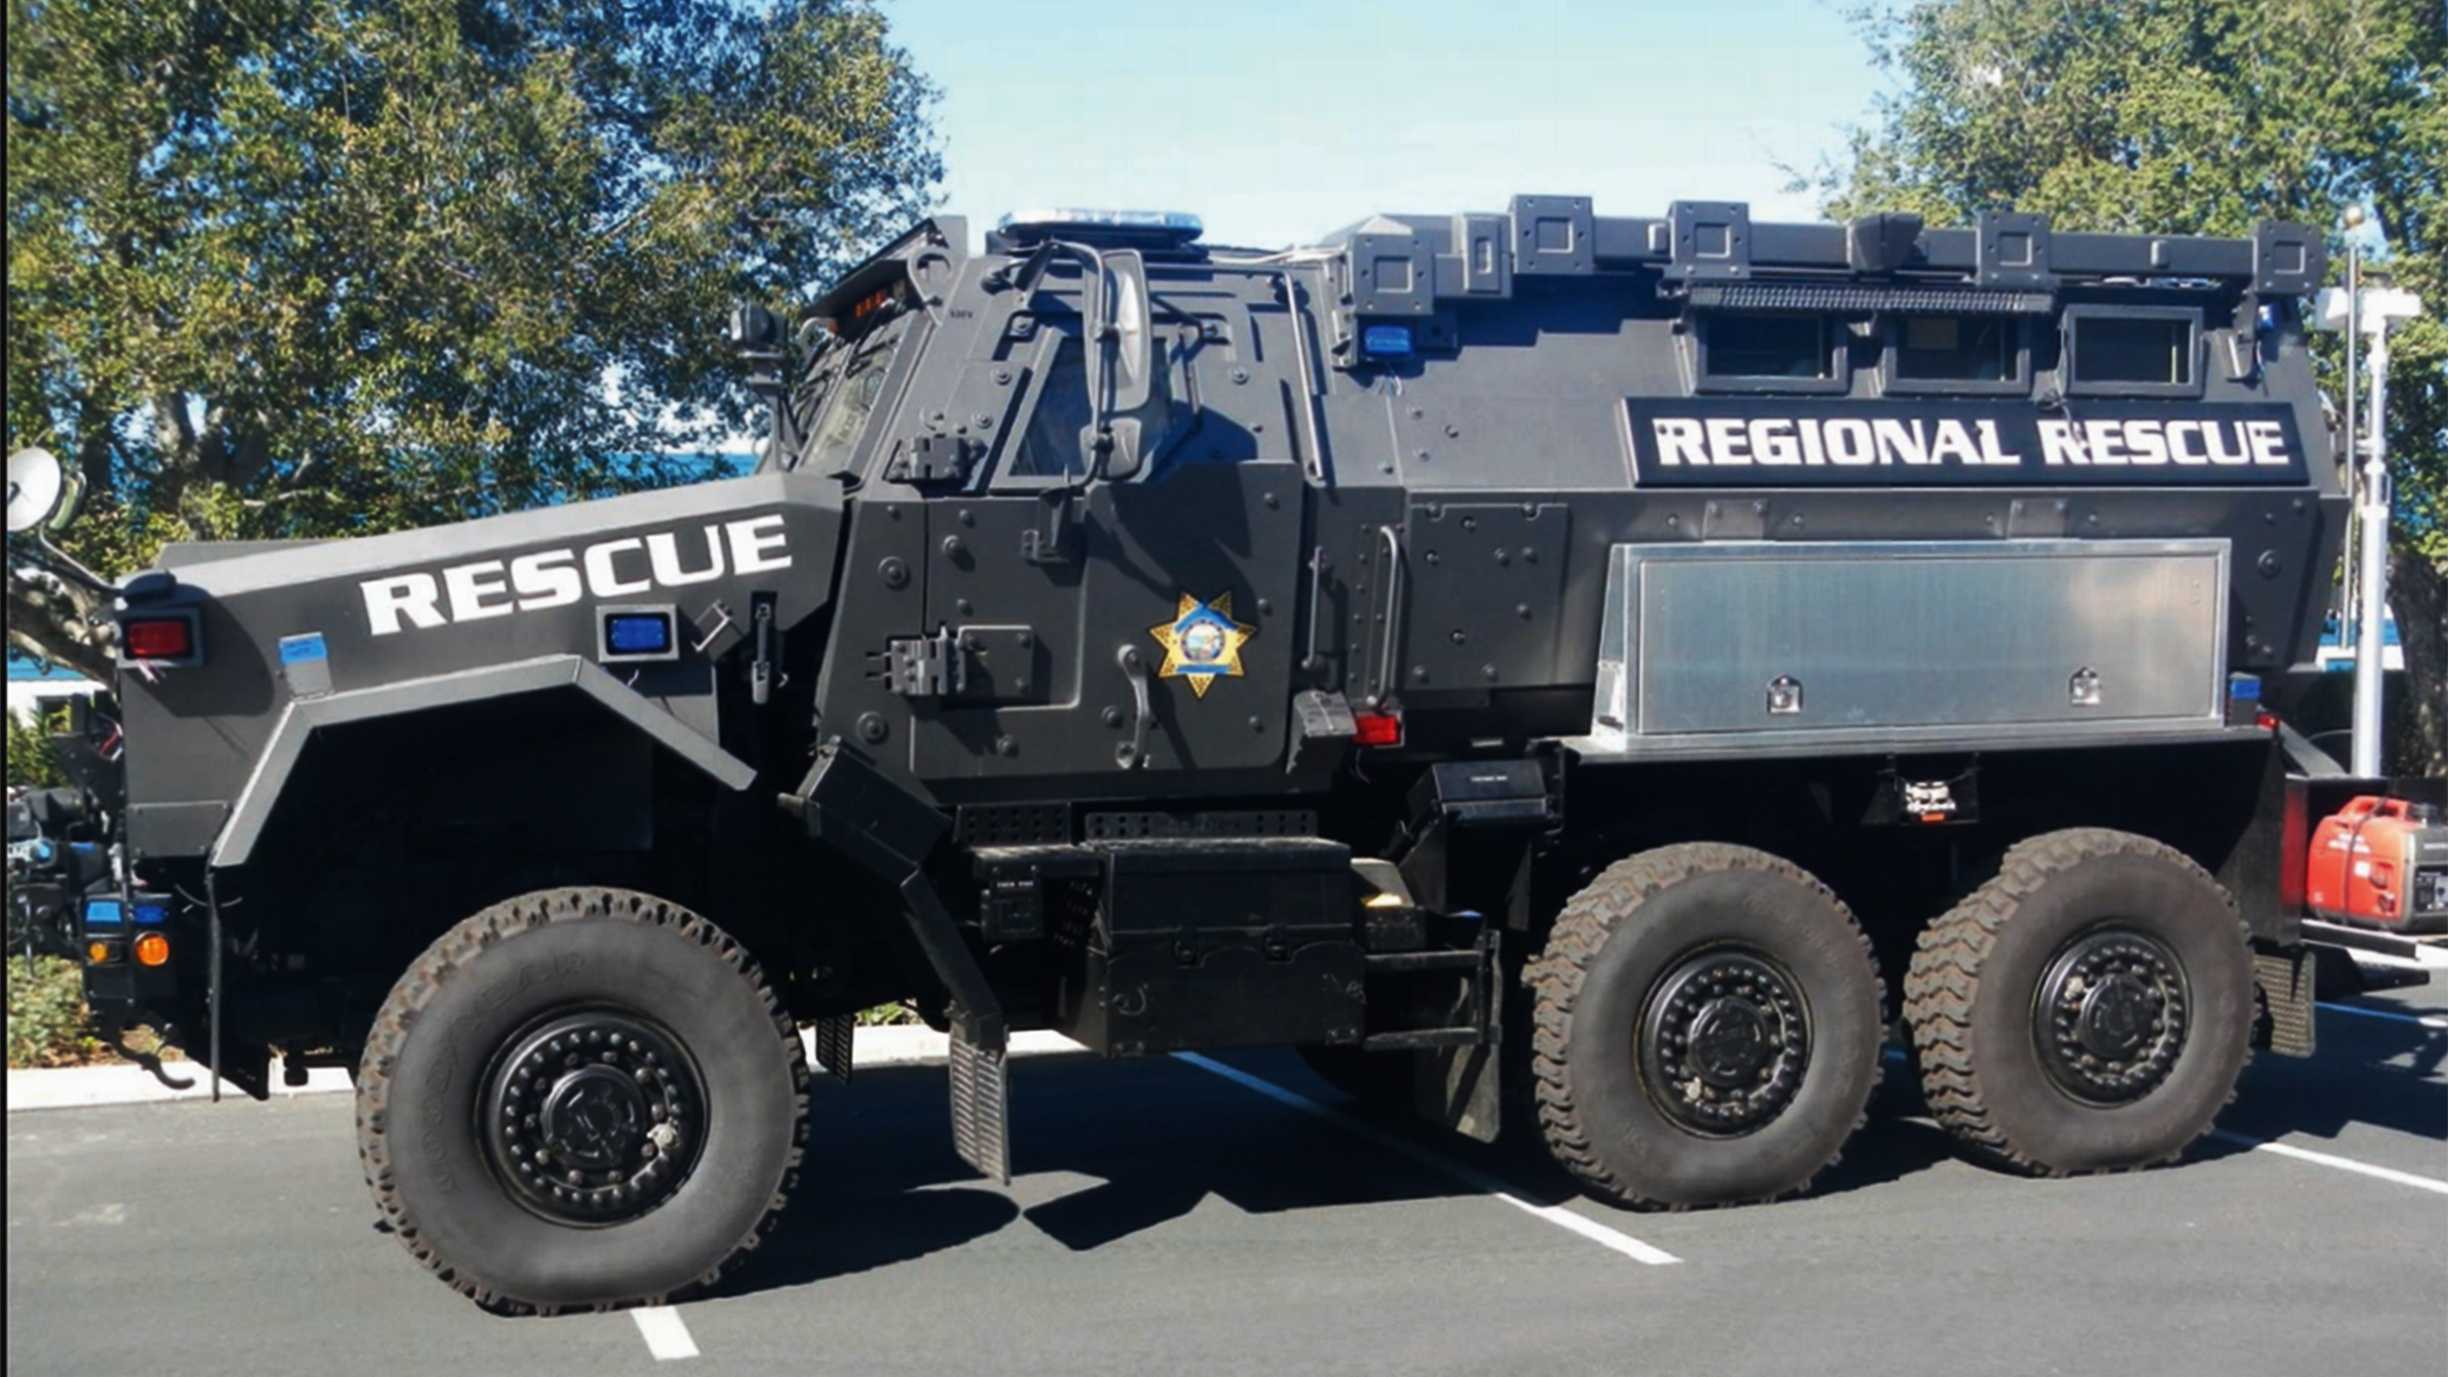 The Del Rey Oaks Police Department has this armor vehicle.